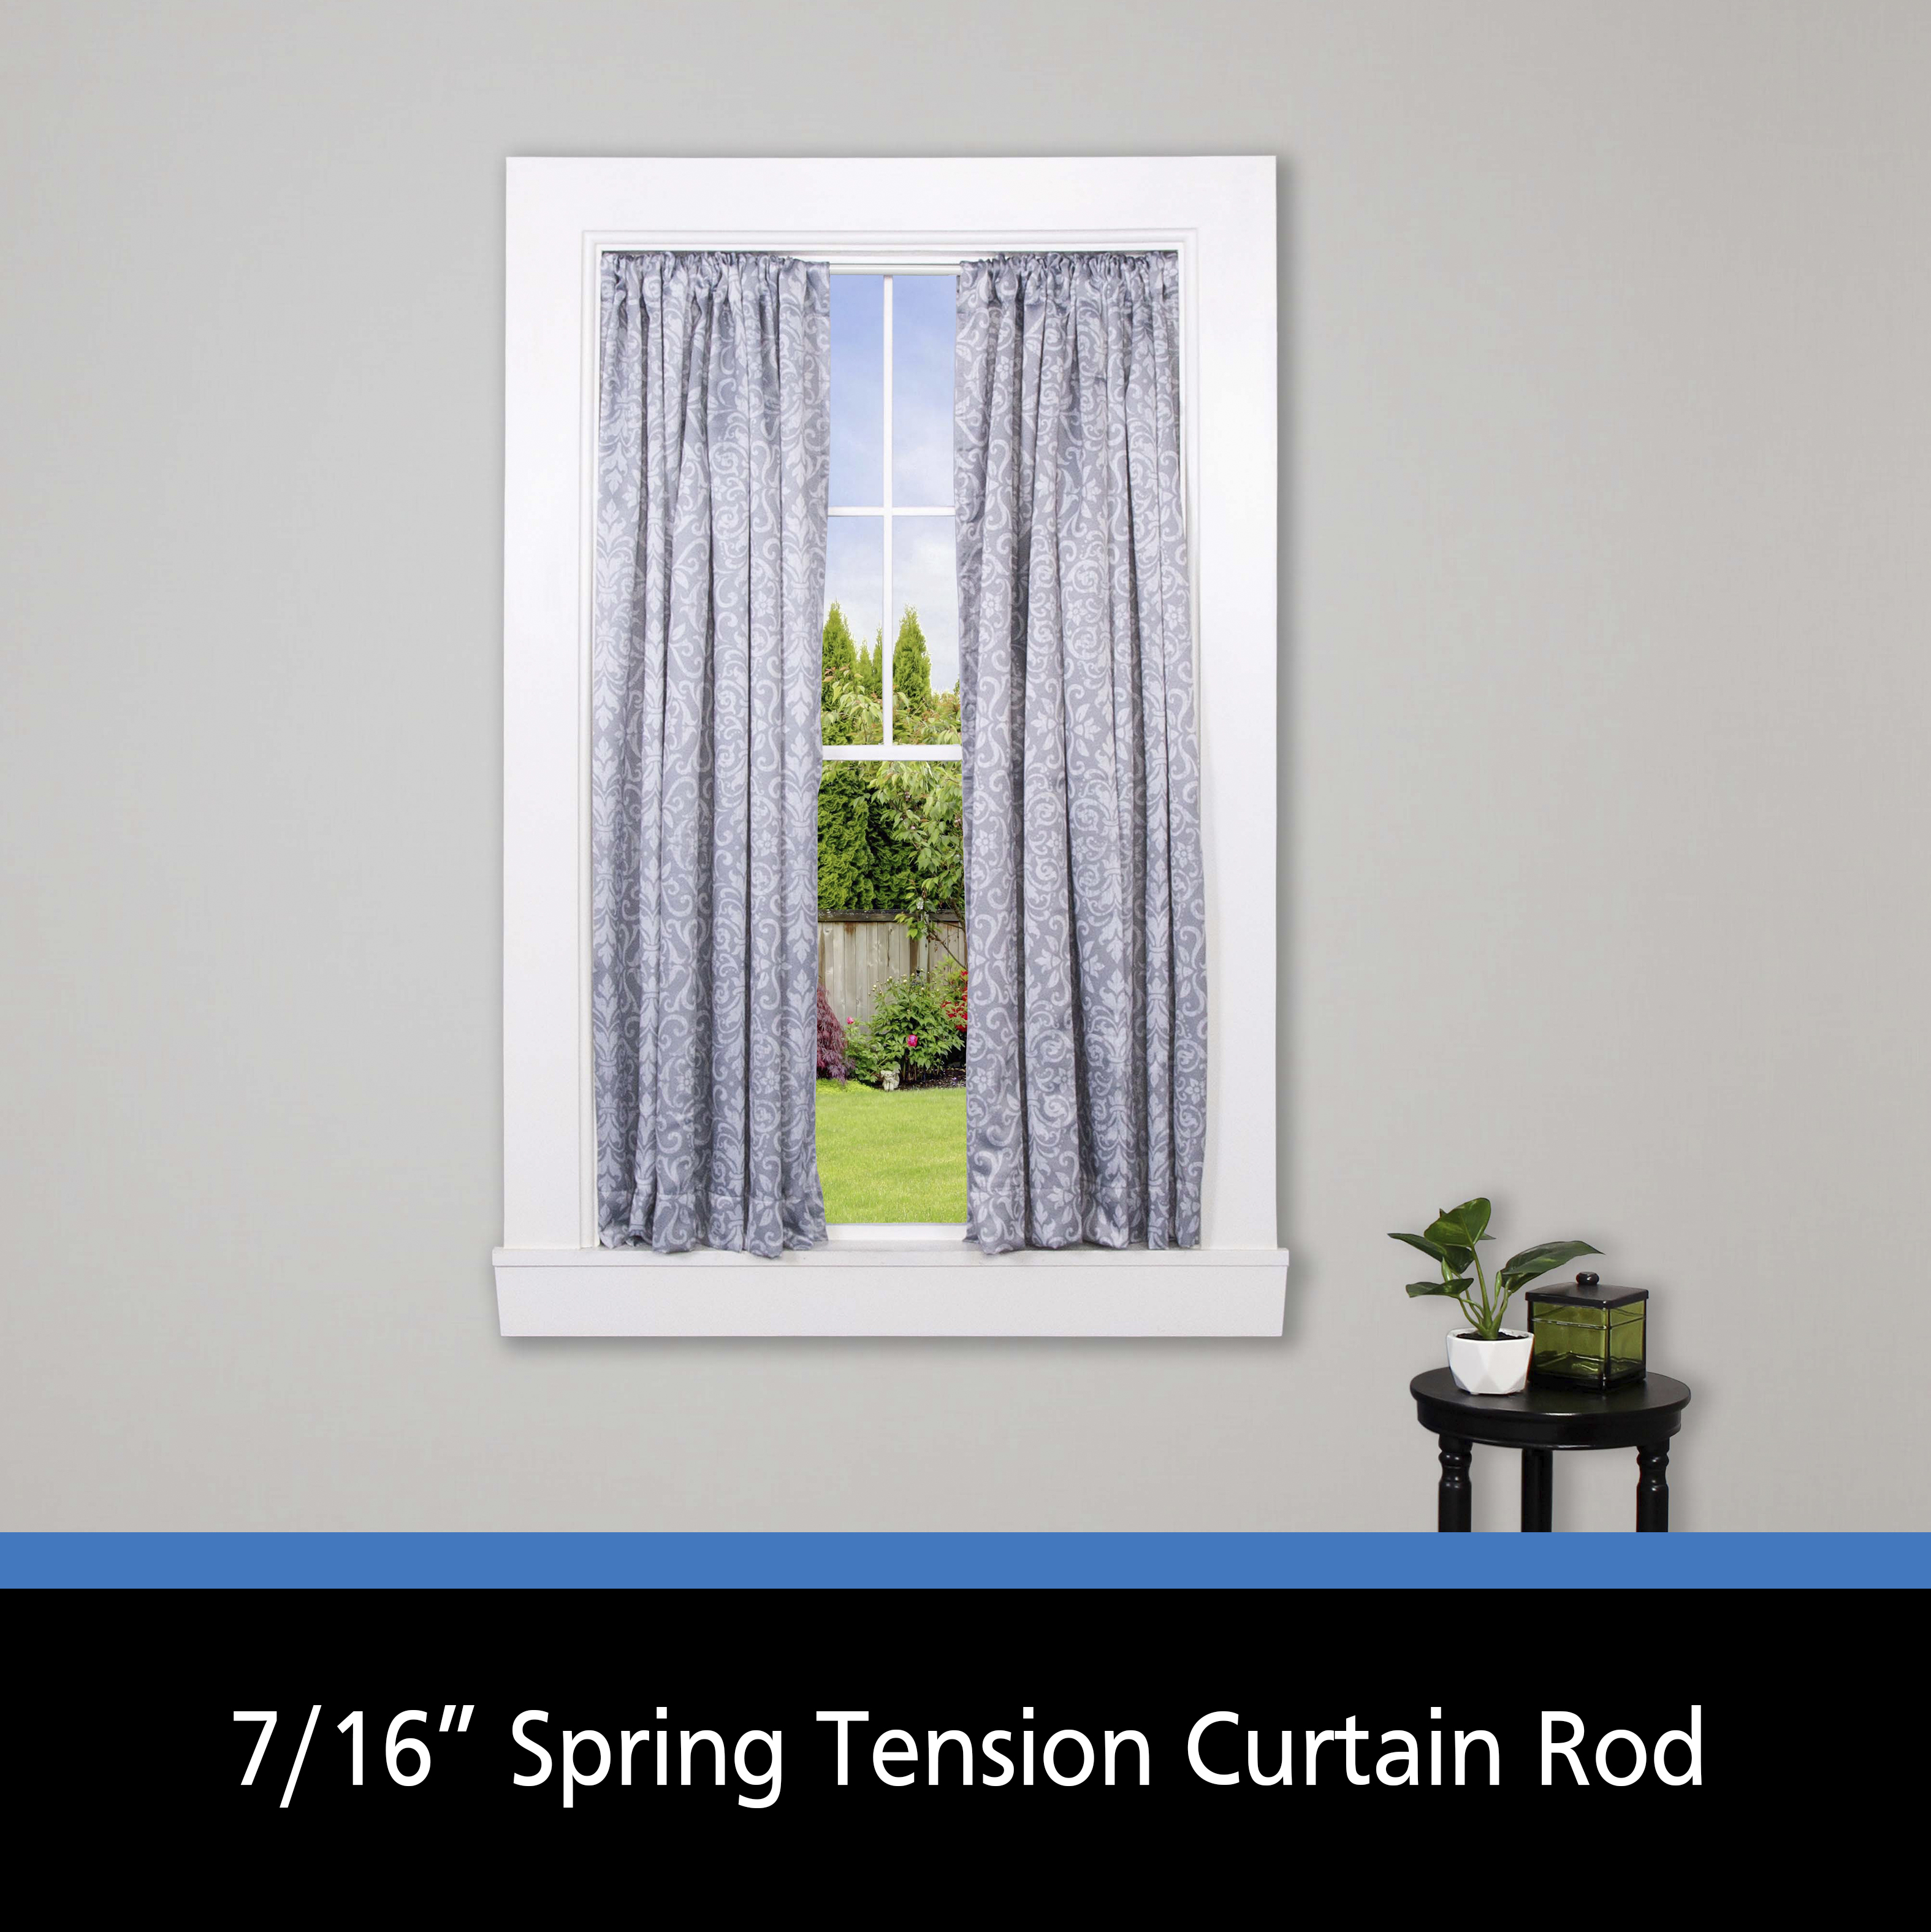 mainstays 28 48 in adjustable spring tension curtain rod 7 16 in diameter white